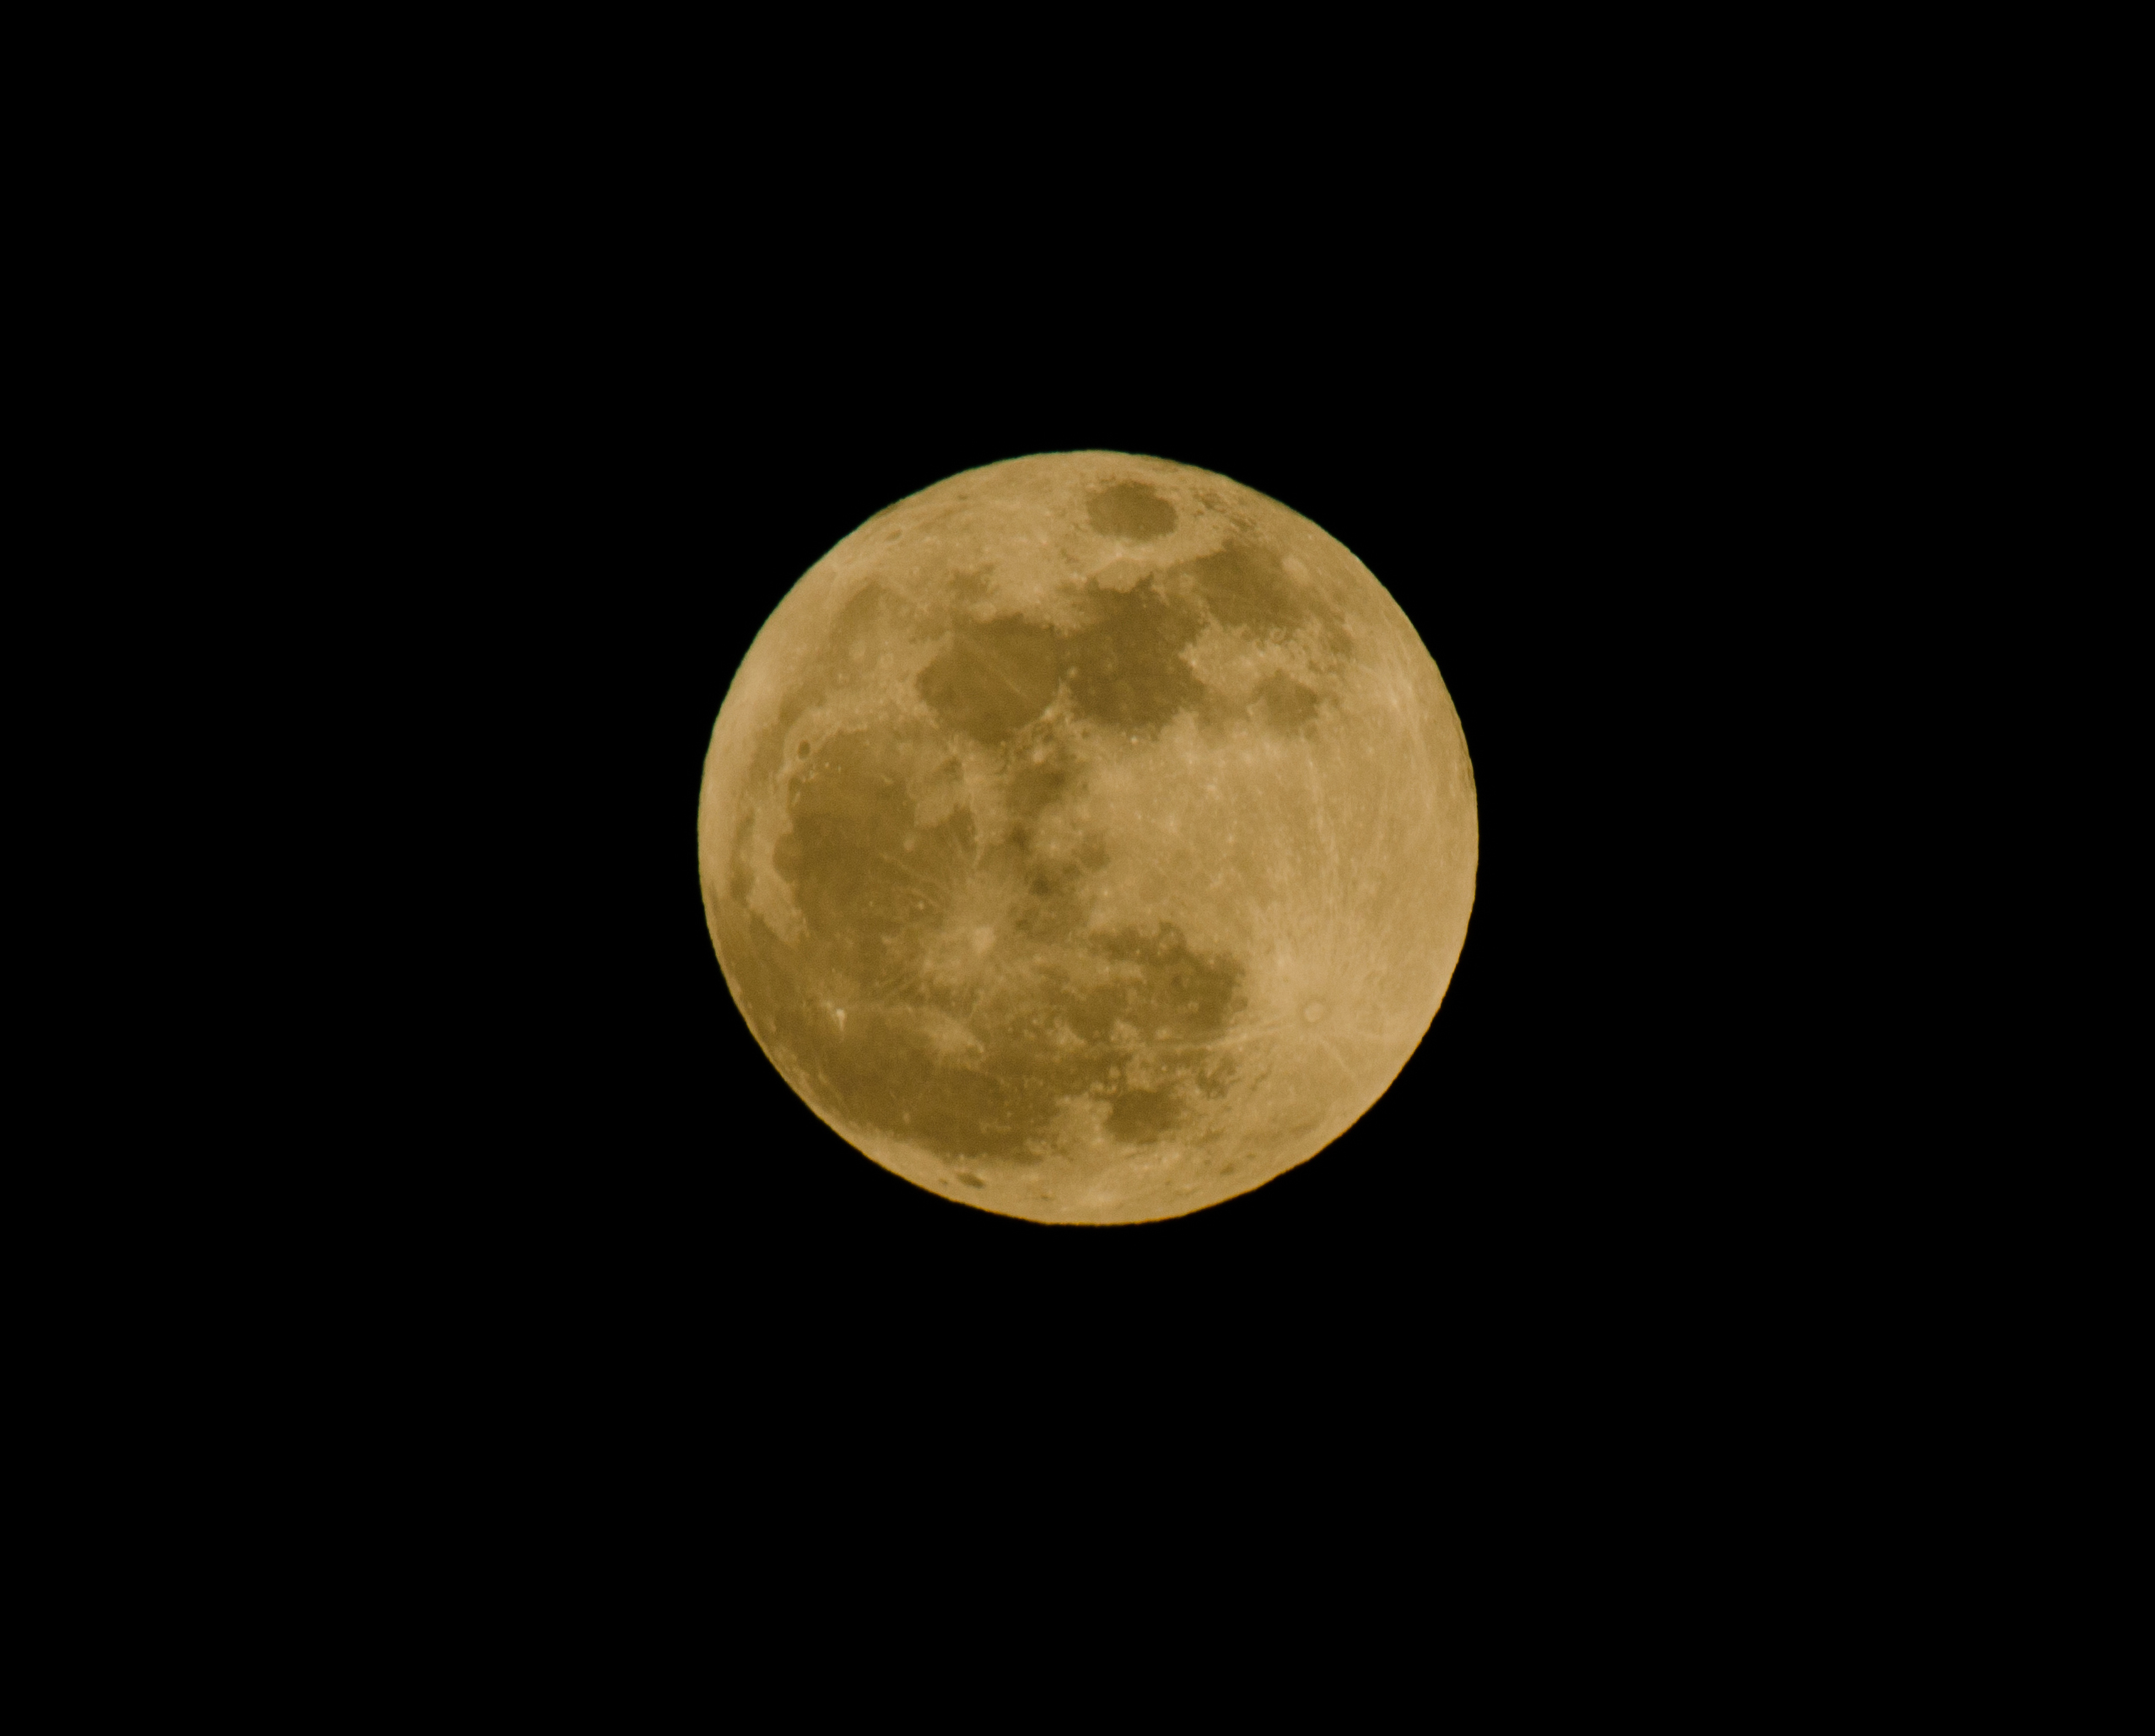 Supermoon 2012 from Walnut Creek, Calif.: Wayne Louie